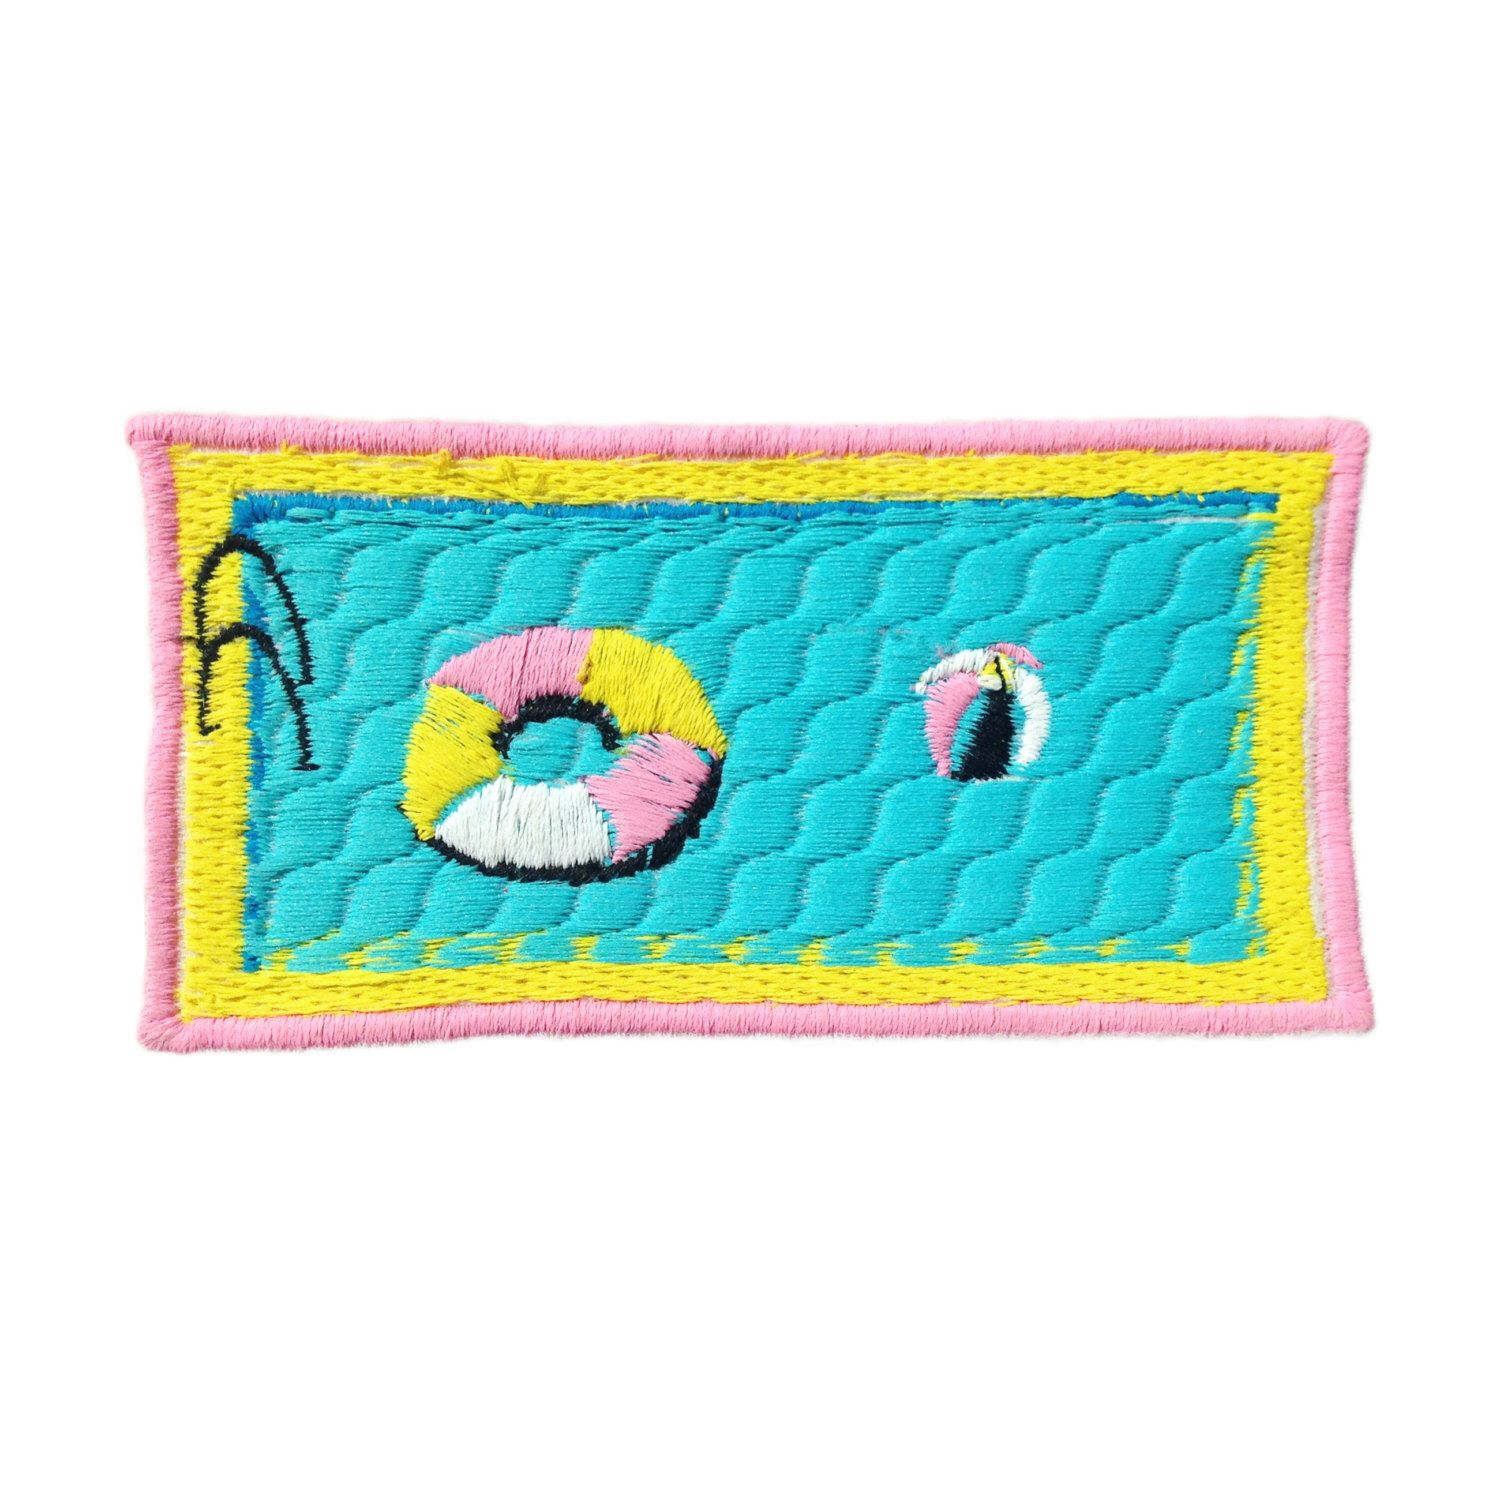 Swimming Pool Iron On Patch By Jess Warby by jesswarbyshop on Etsy https://www.etsy.com/listing/237549237/swimming-pool-iron-on-patch-by-jess